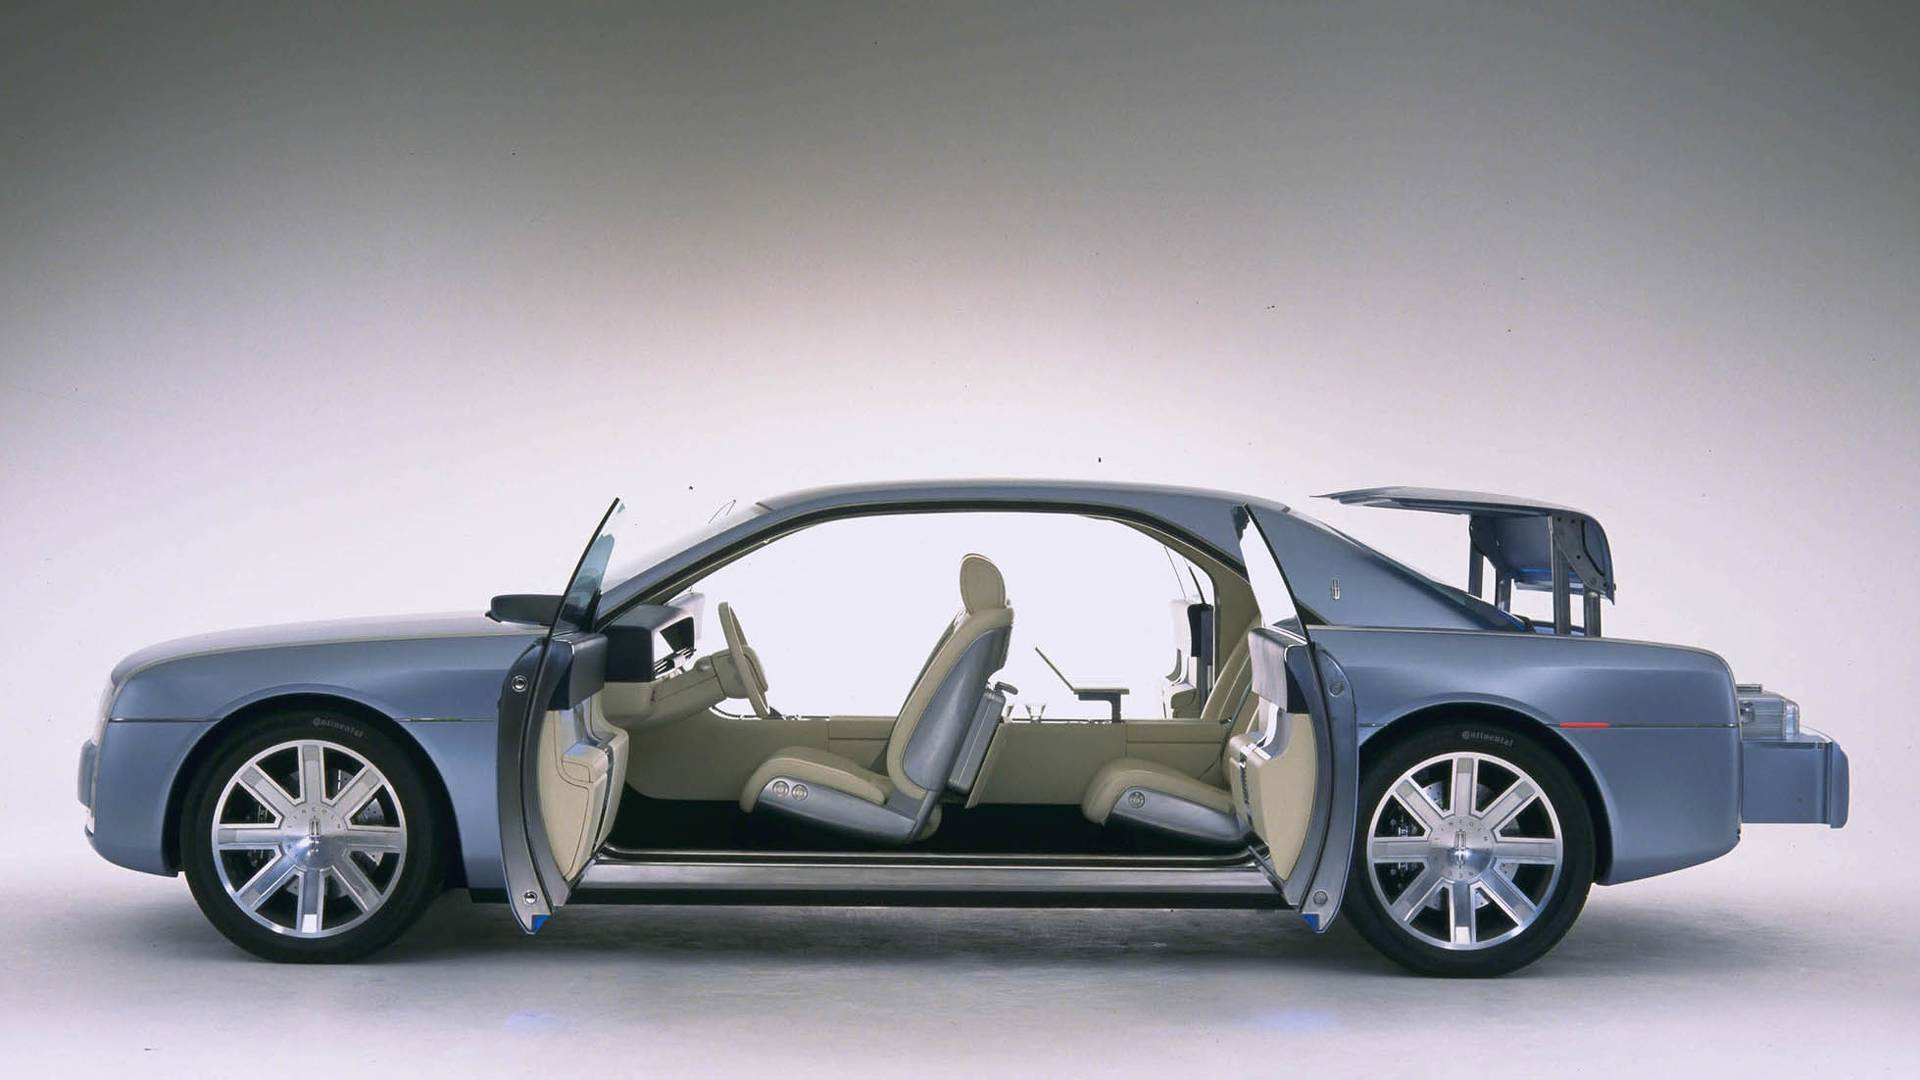 62 Best Review 2020 Lincoln Continental Exterior and Interior with 2020 Lincoln Continental